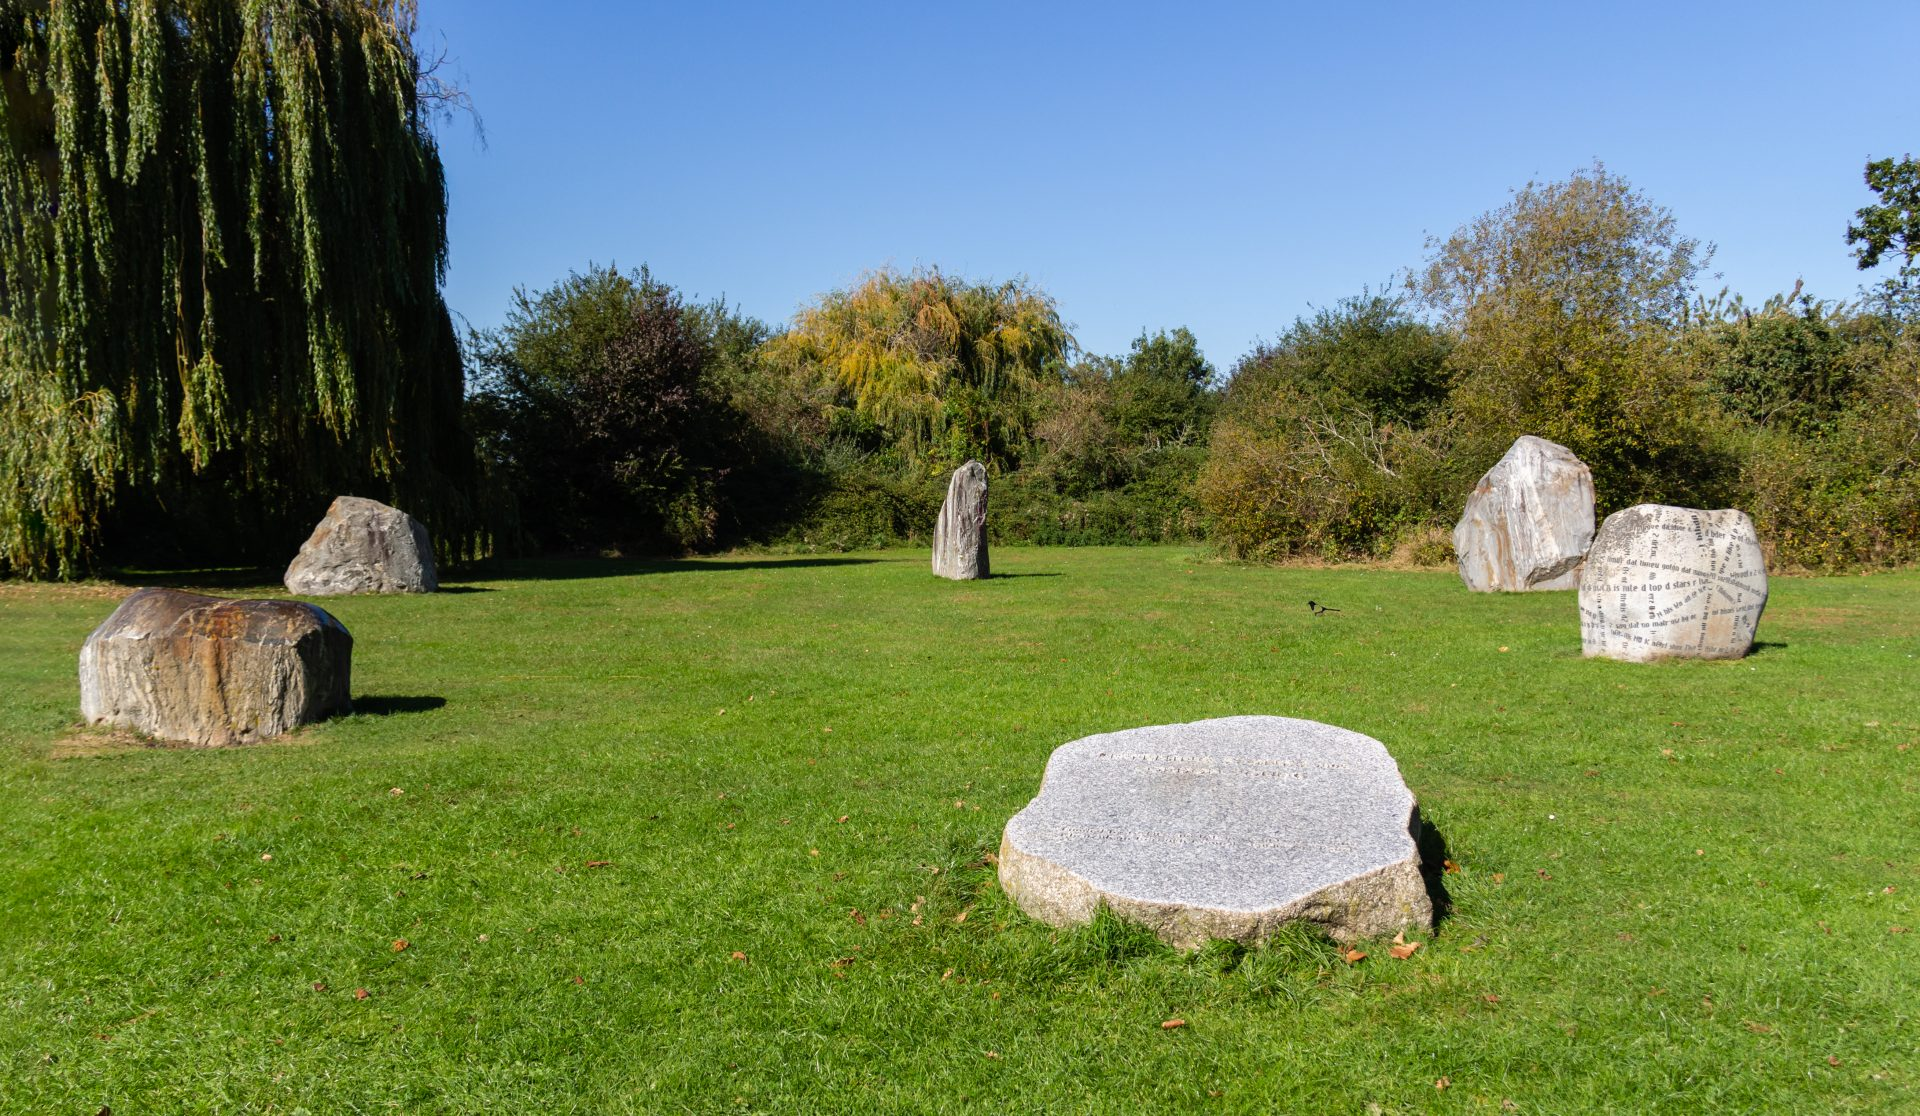 Modern standing stones with codes carved on them at Hesters way park behind GCHQ